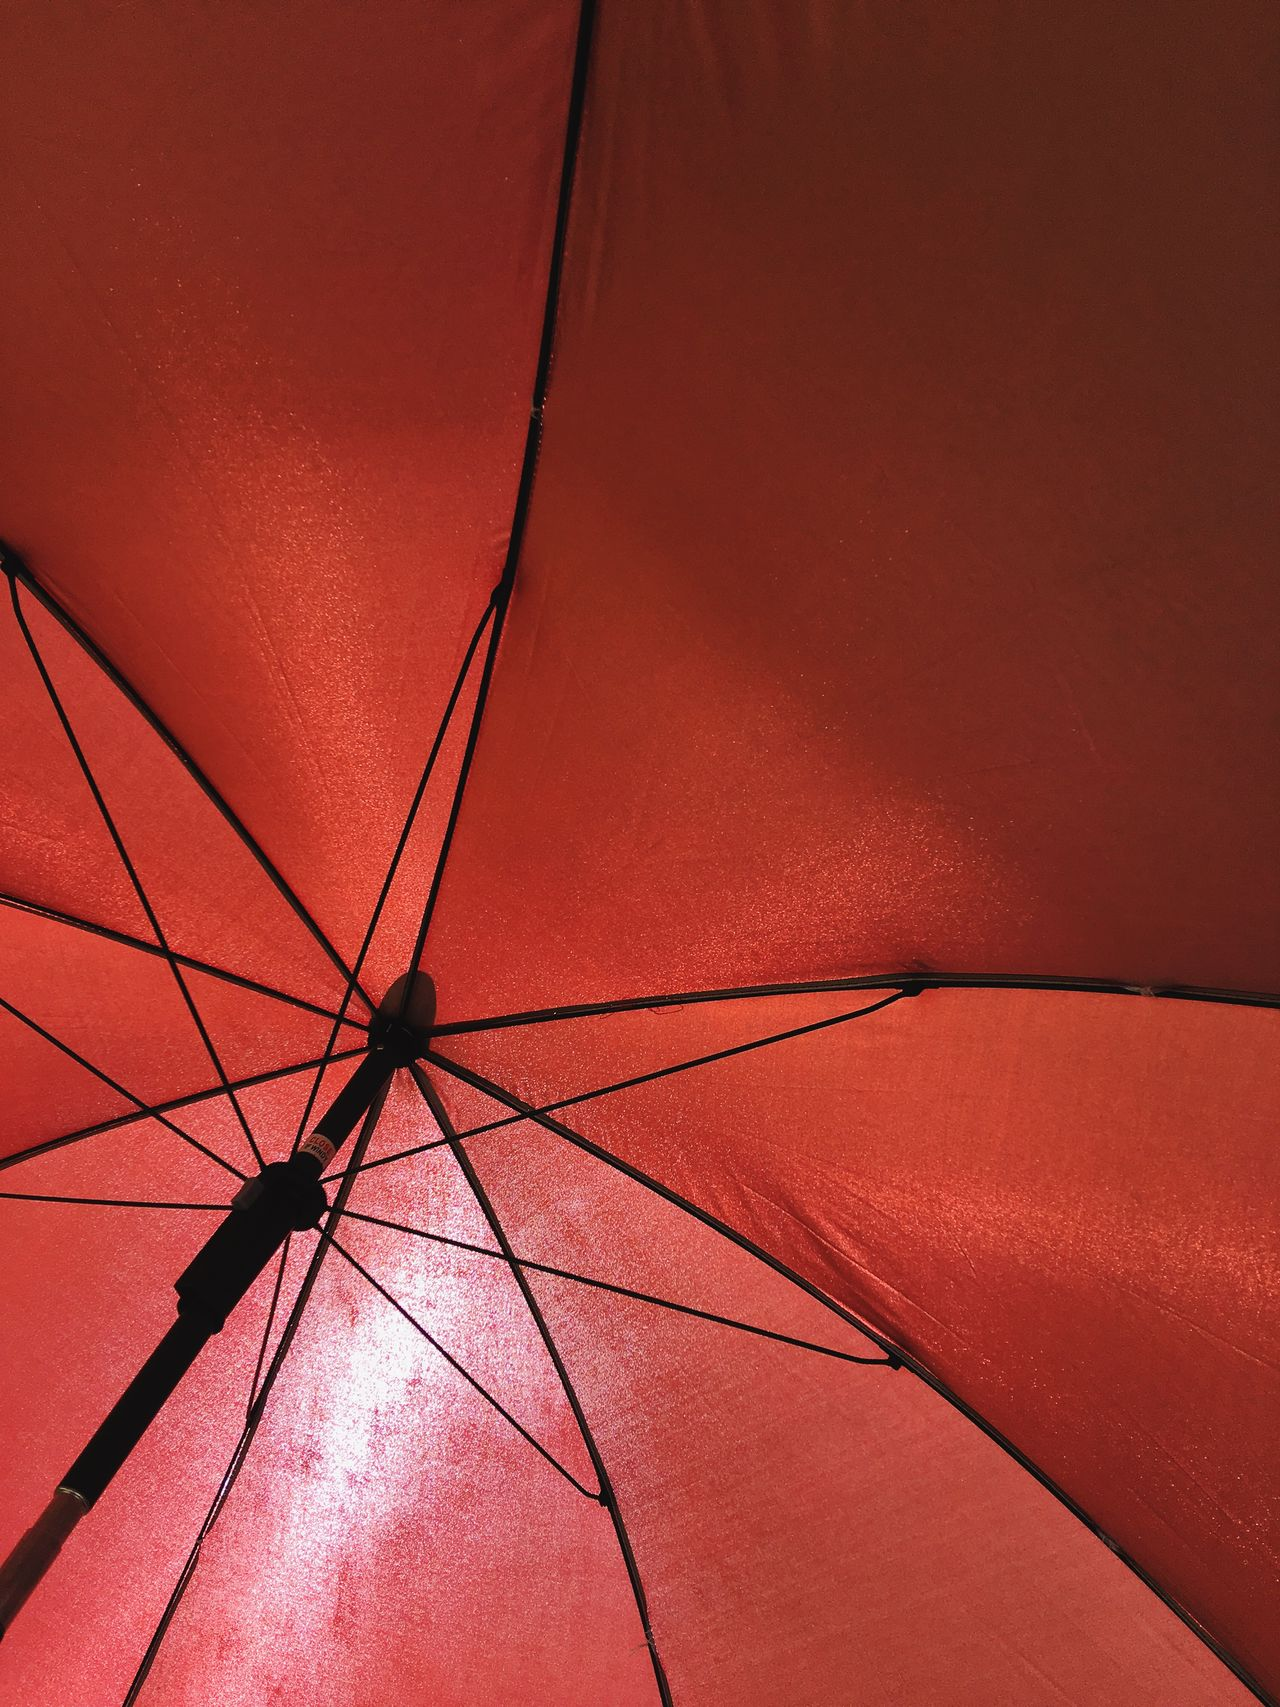 Full Frame Shot Of Red Parasol Back Lit Backgrounds Beach Umbrella Close-up Color Image Day Directly Below Full Frame Low Angle View No People Outdoors Parasol Photograpy Protection Red Shelter Single Object Summer Sunlight Sunshade Vertical